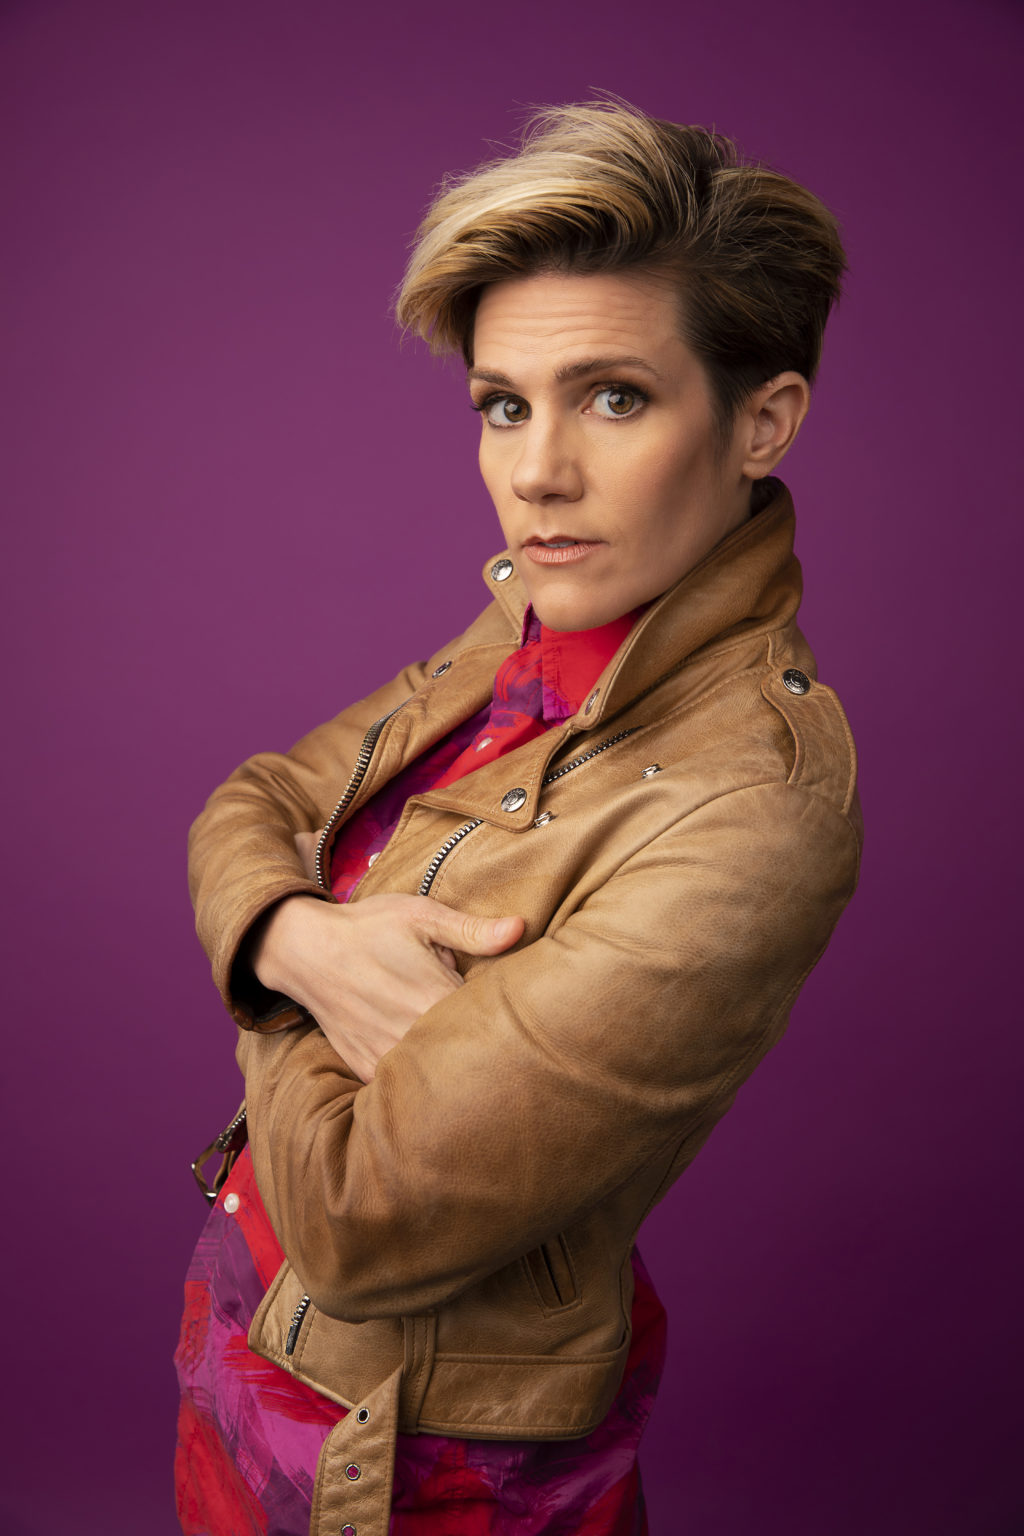 Cameron Esposito on Loving Her Younger Goofy Self image